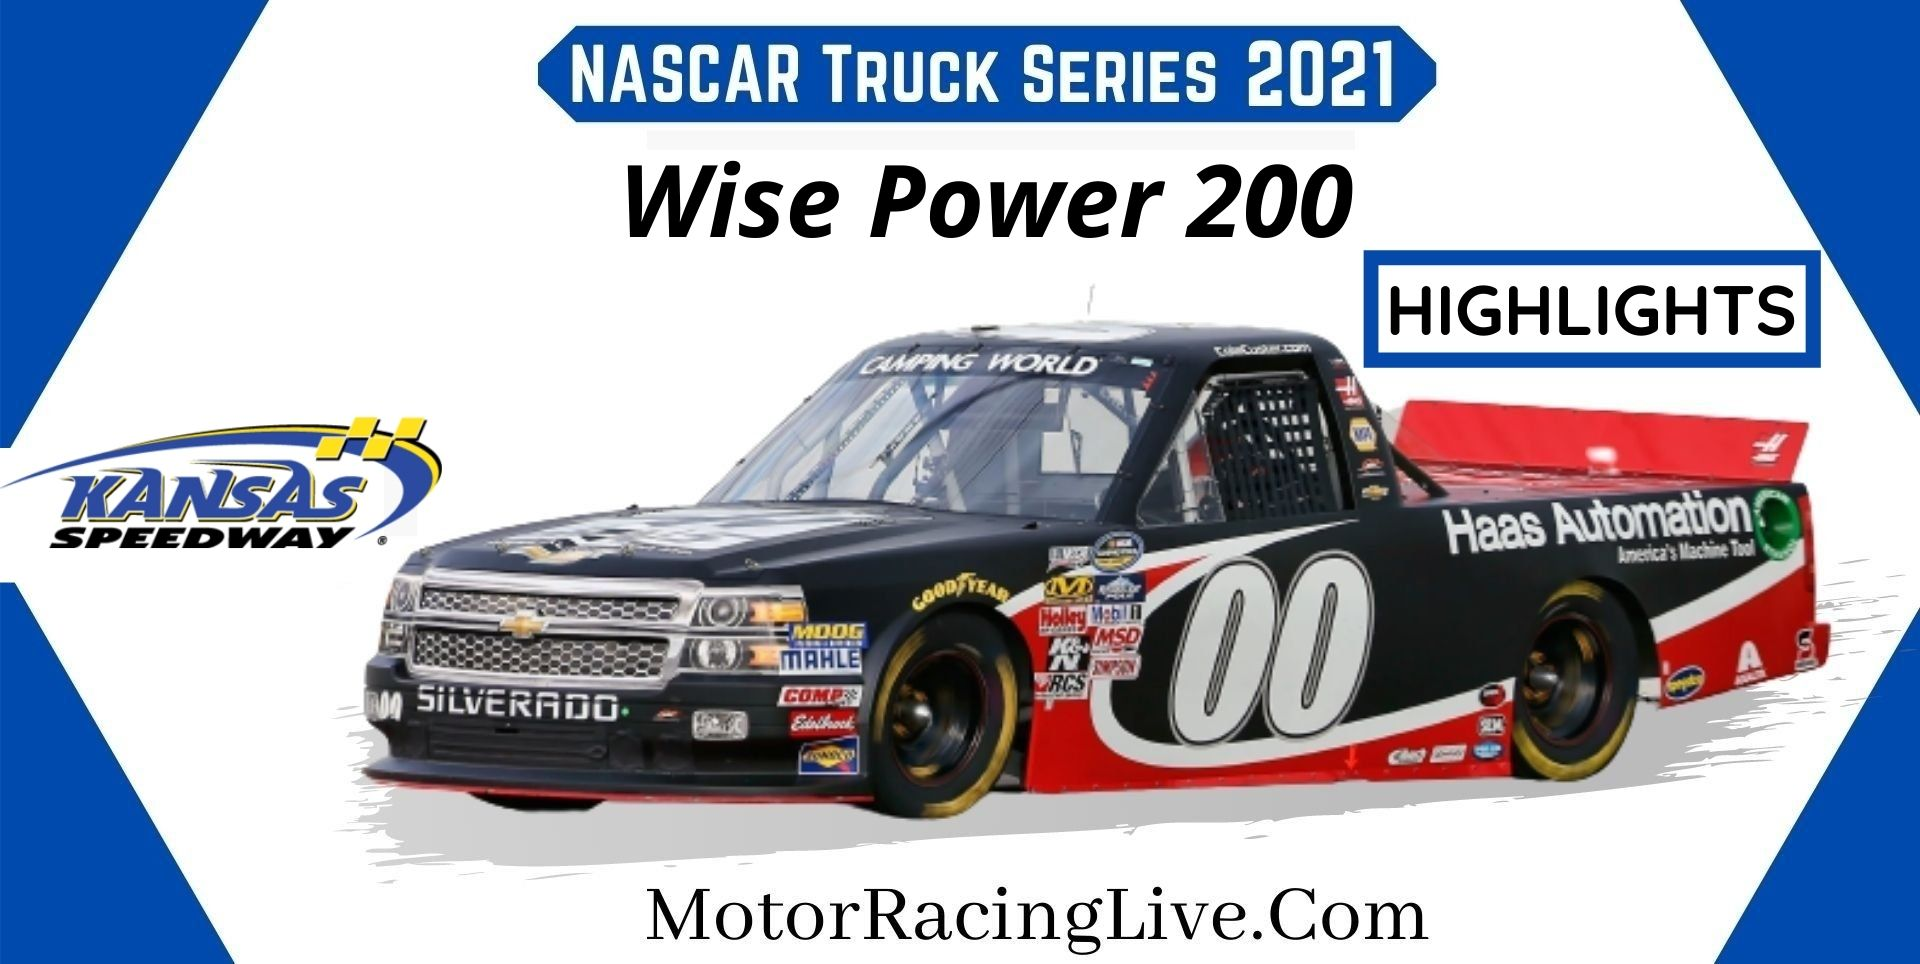 Wise Power 200 Highlights 2021 NASCAR Truck Series